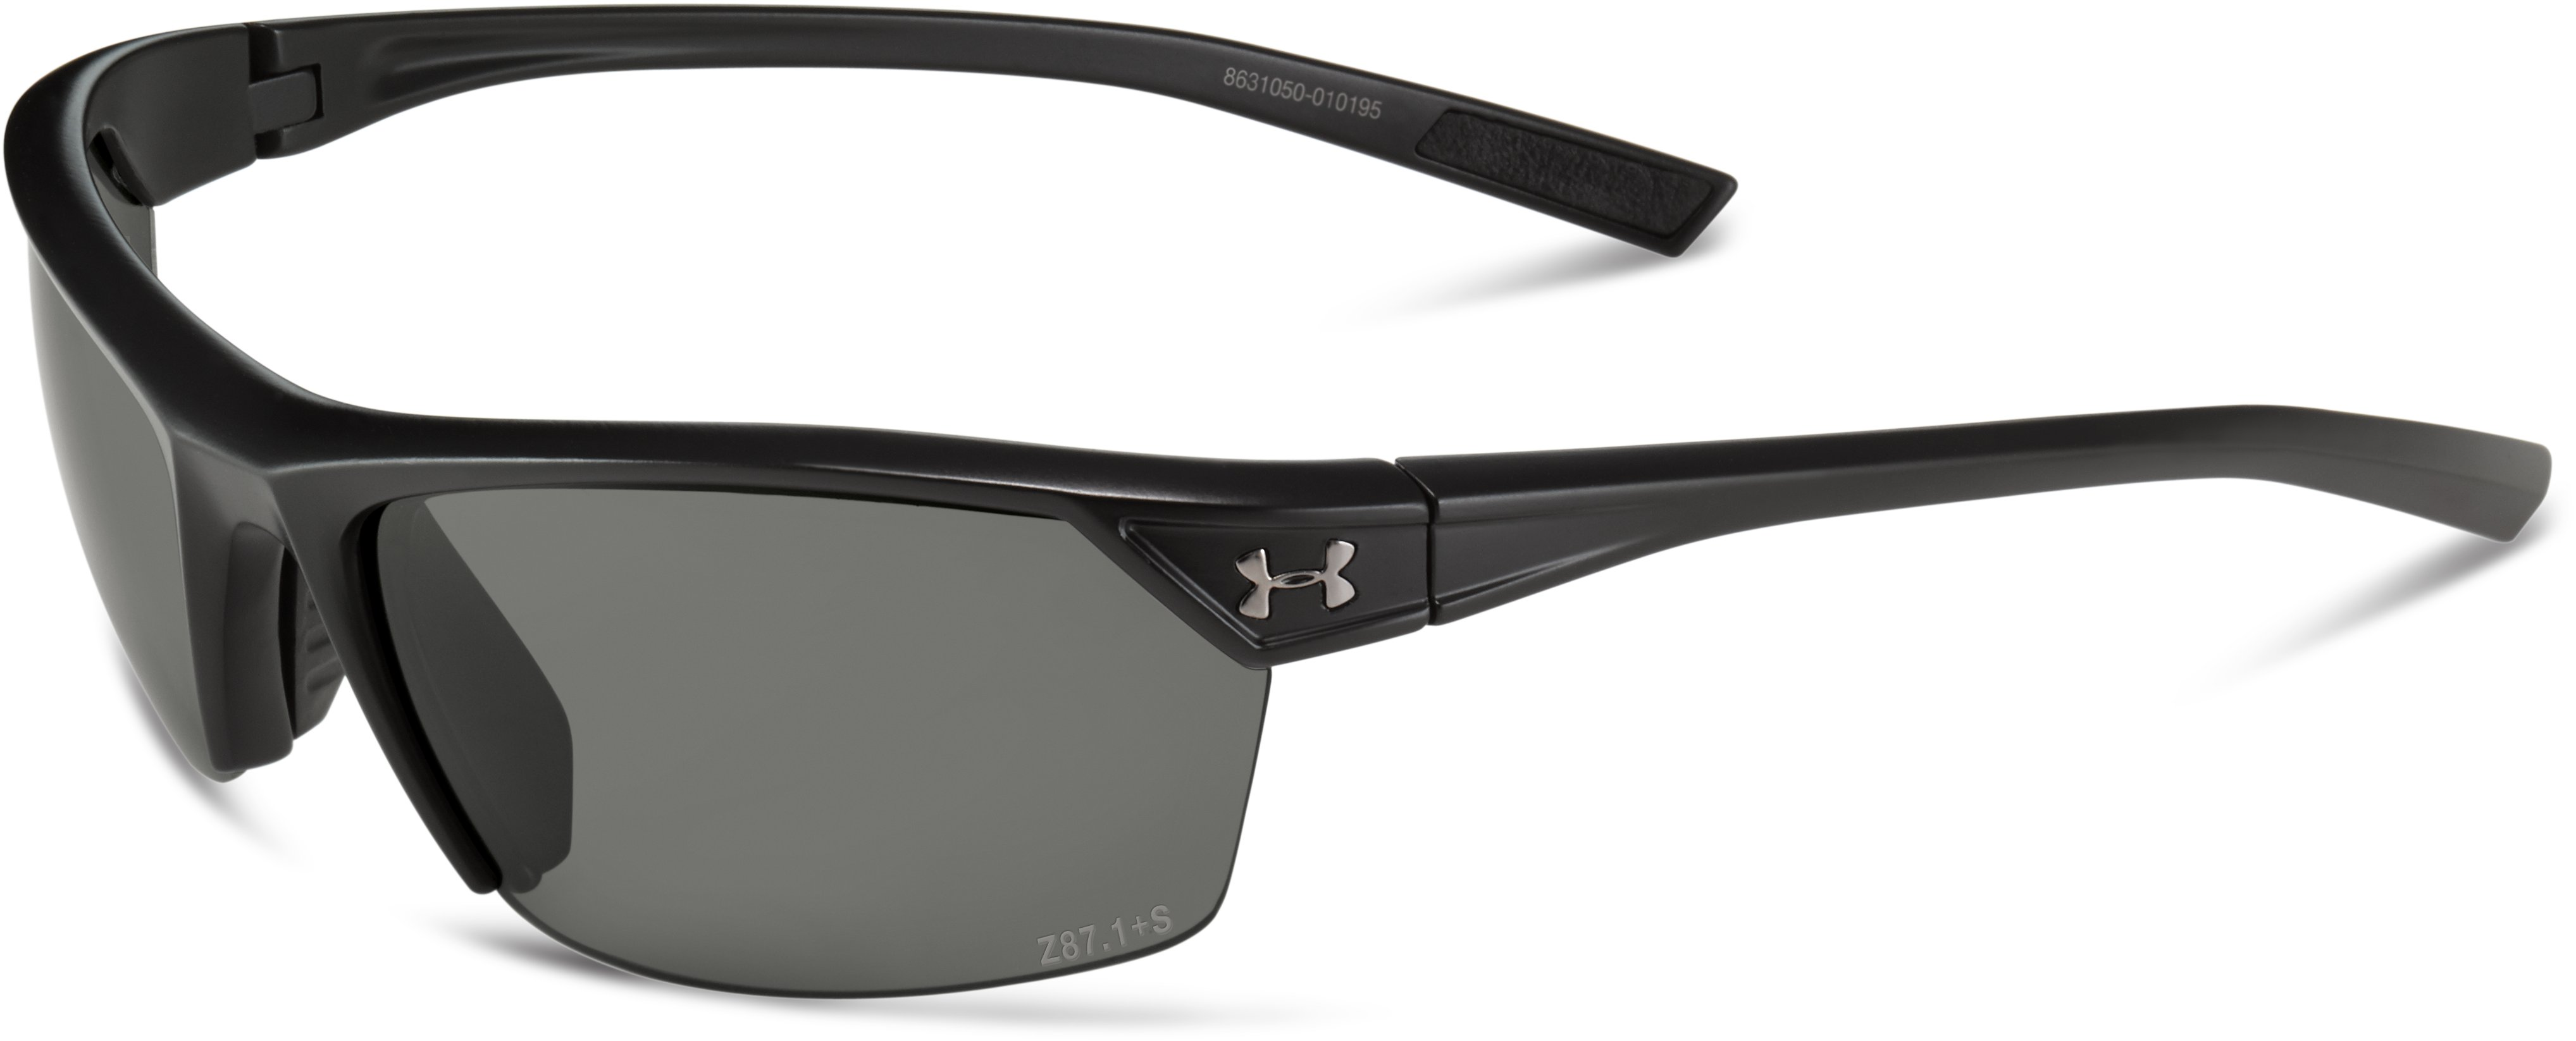 UA Zone 2.0 Interchange WWP Sunglasses, Satin Black, undefined